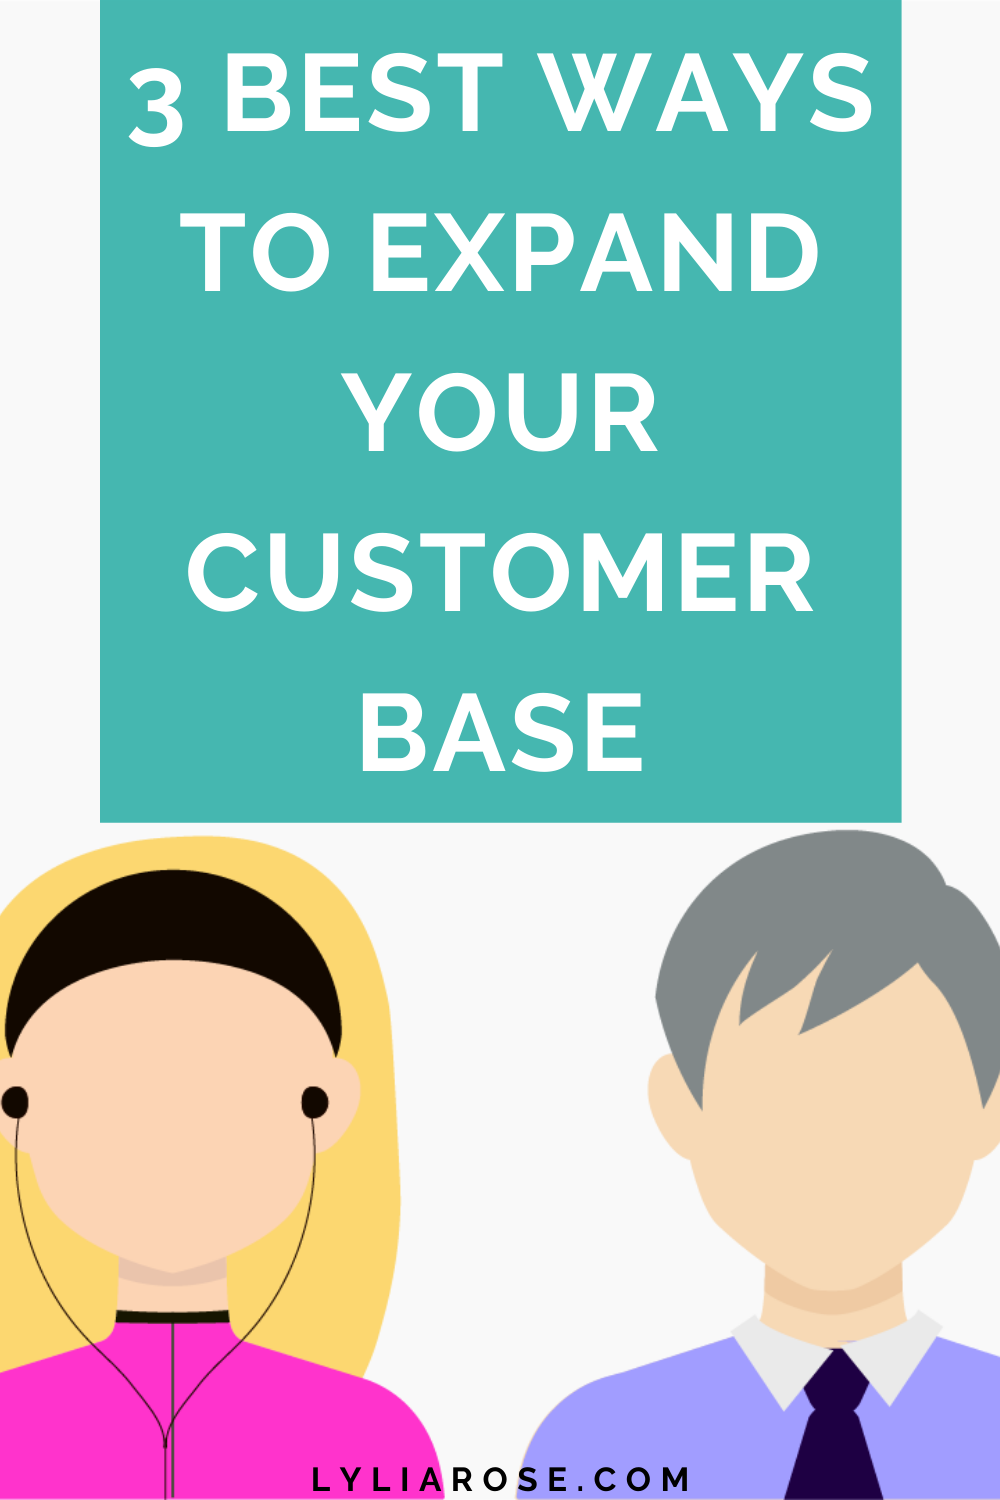 3 best ways to expand your customer base - advice for home business owners